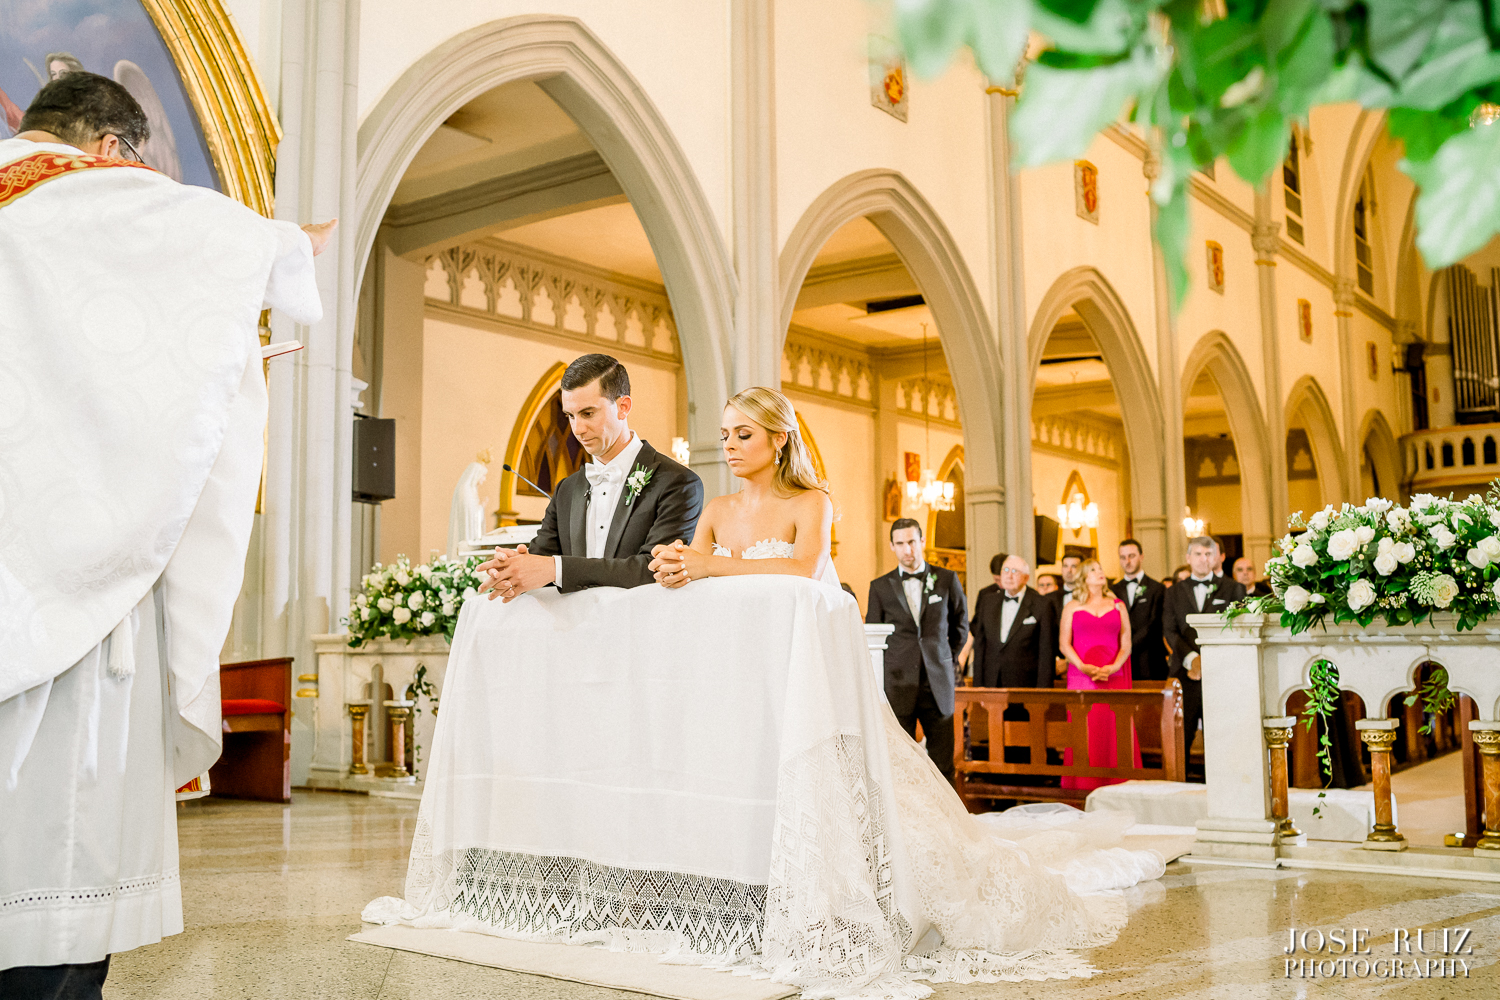 Jose Ruiz Photography- Carolina & Gabo Wedding Day-0103.jpg